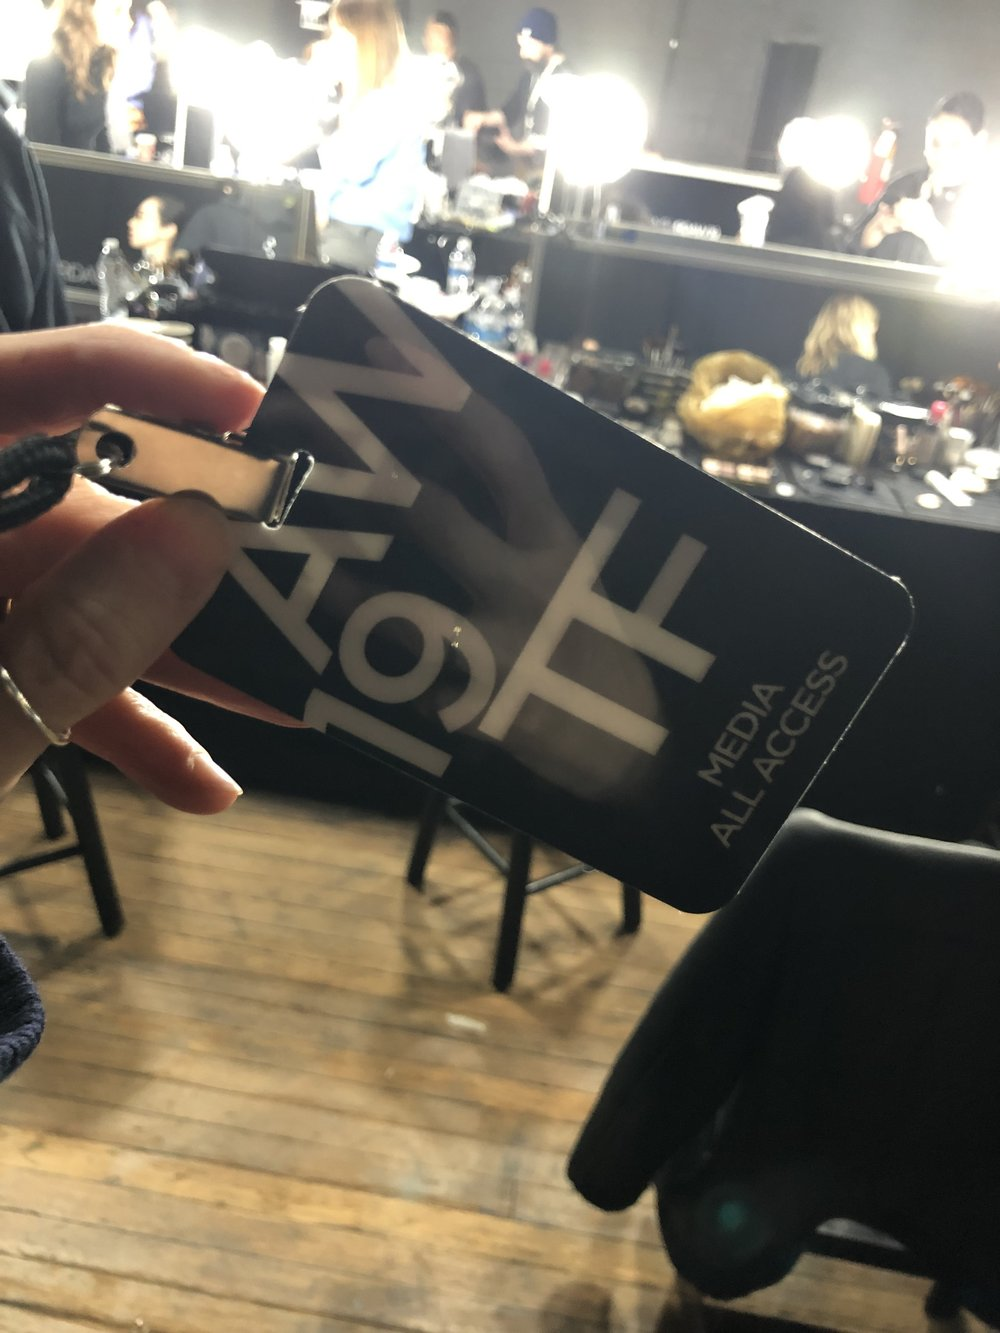 All access media pass at the ready and we are heading backstage!